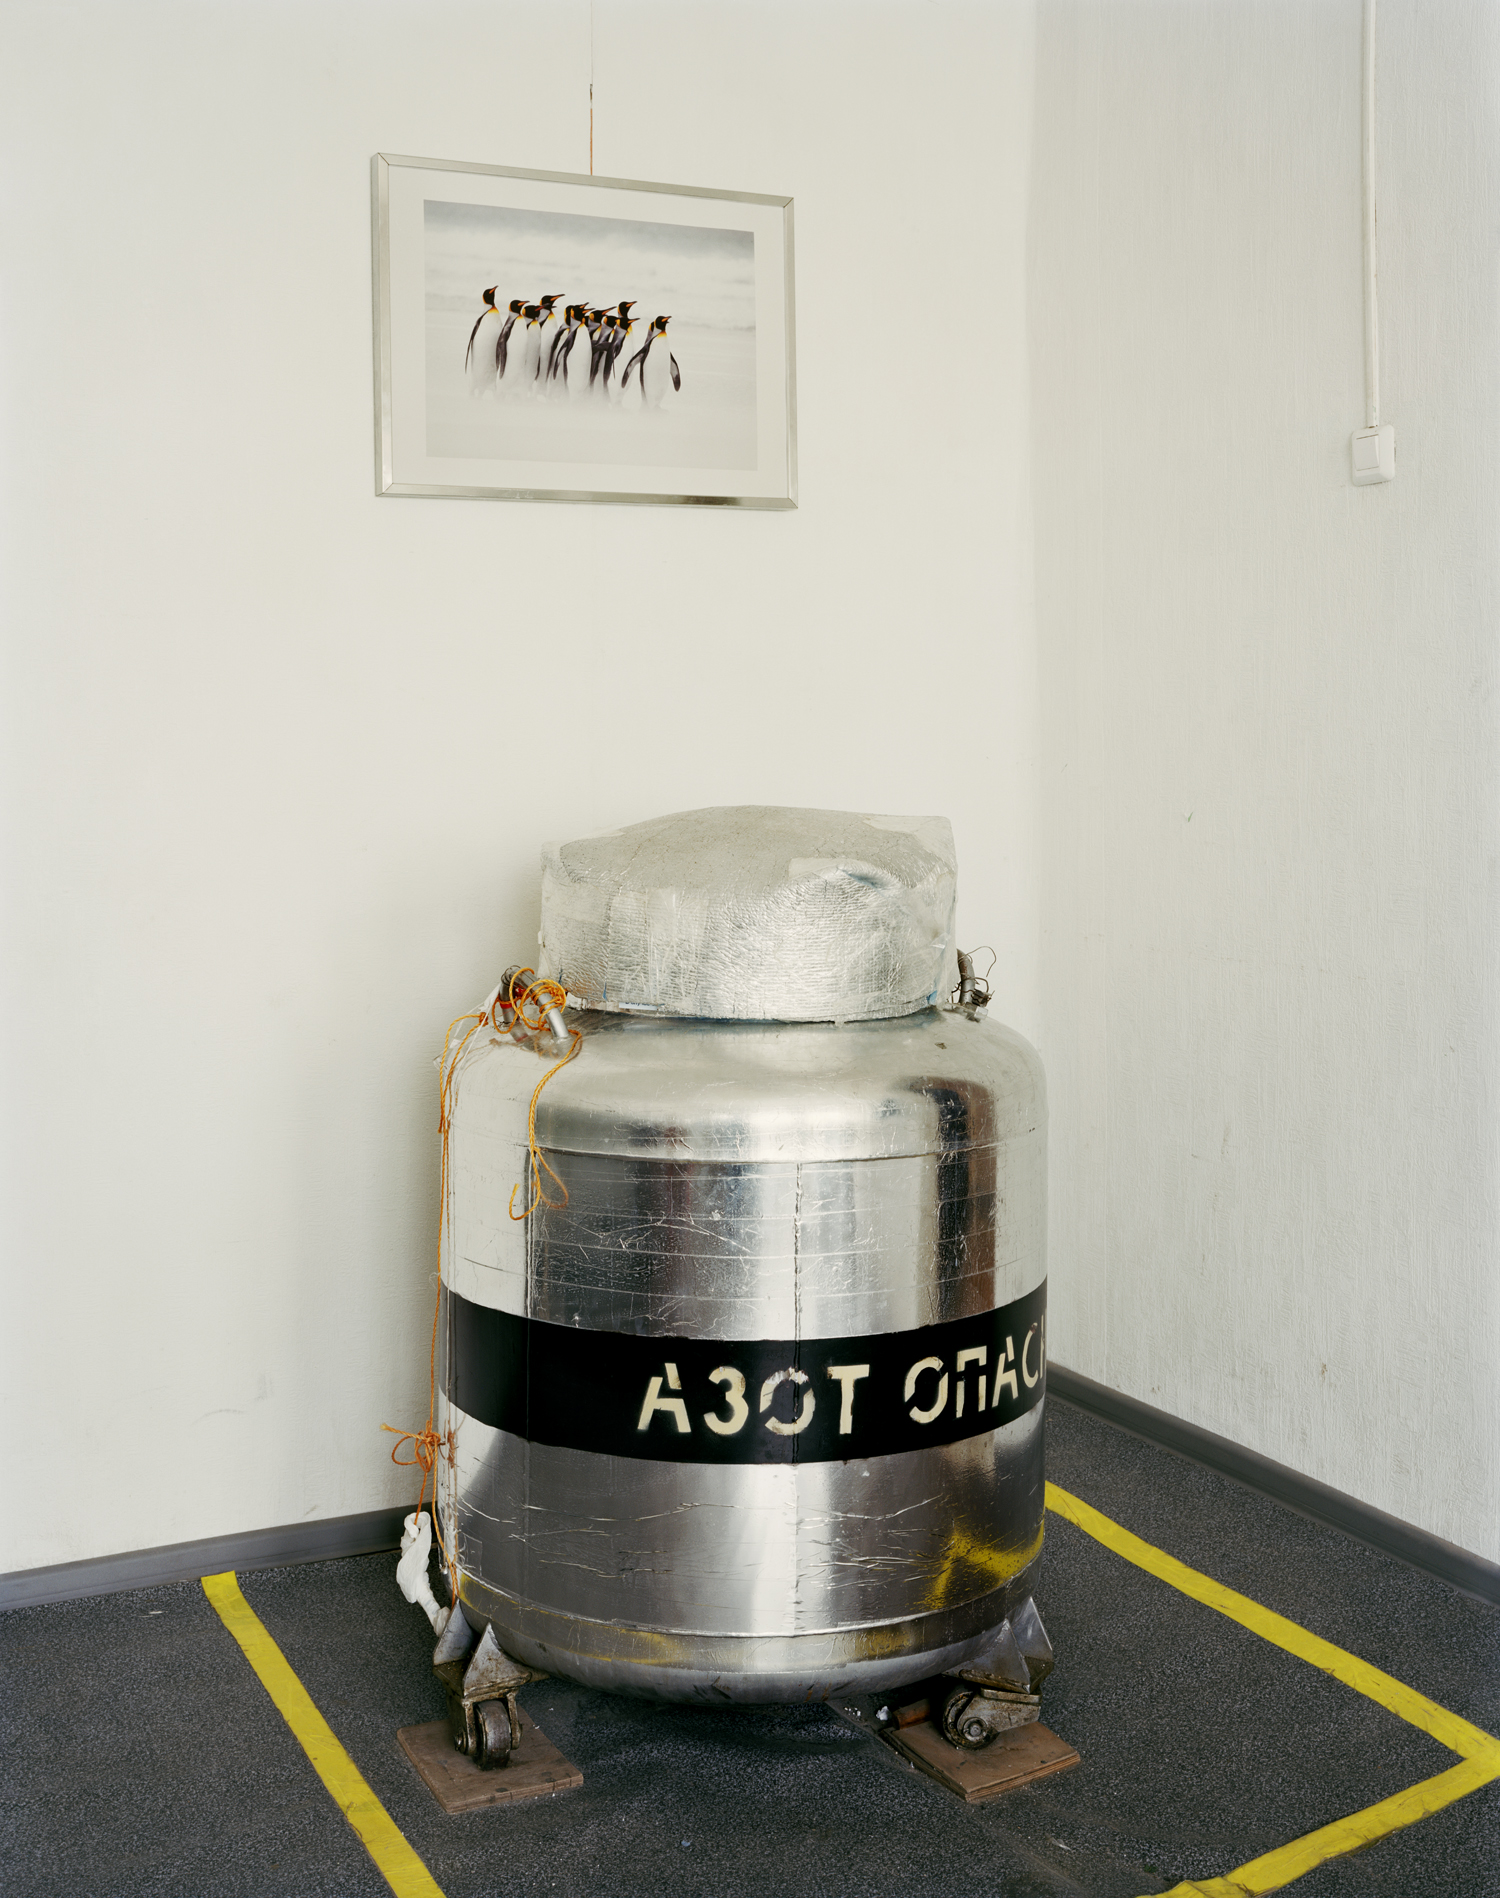 Cryostat, which stores the head of the first cryonics patient in Russia, Lidia Fedorenko, and many DNA samples | KrioRus, Alabushevo, Moscow, Russia 2010